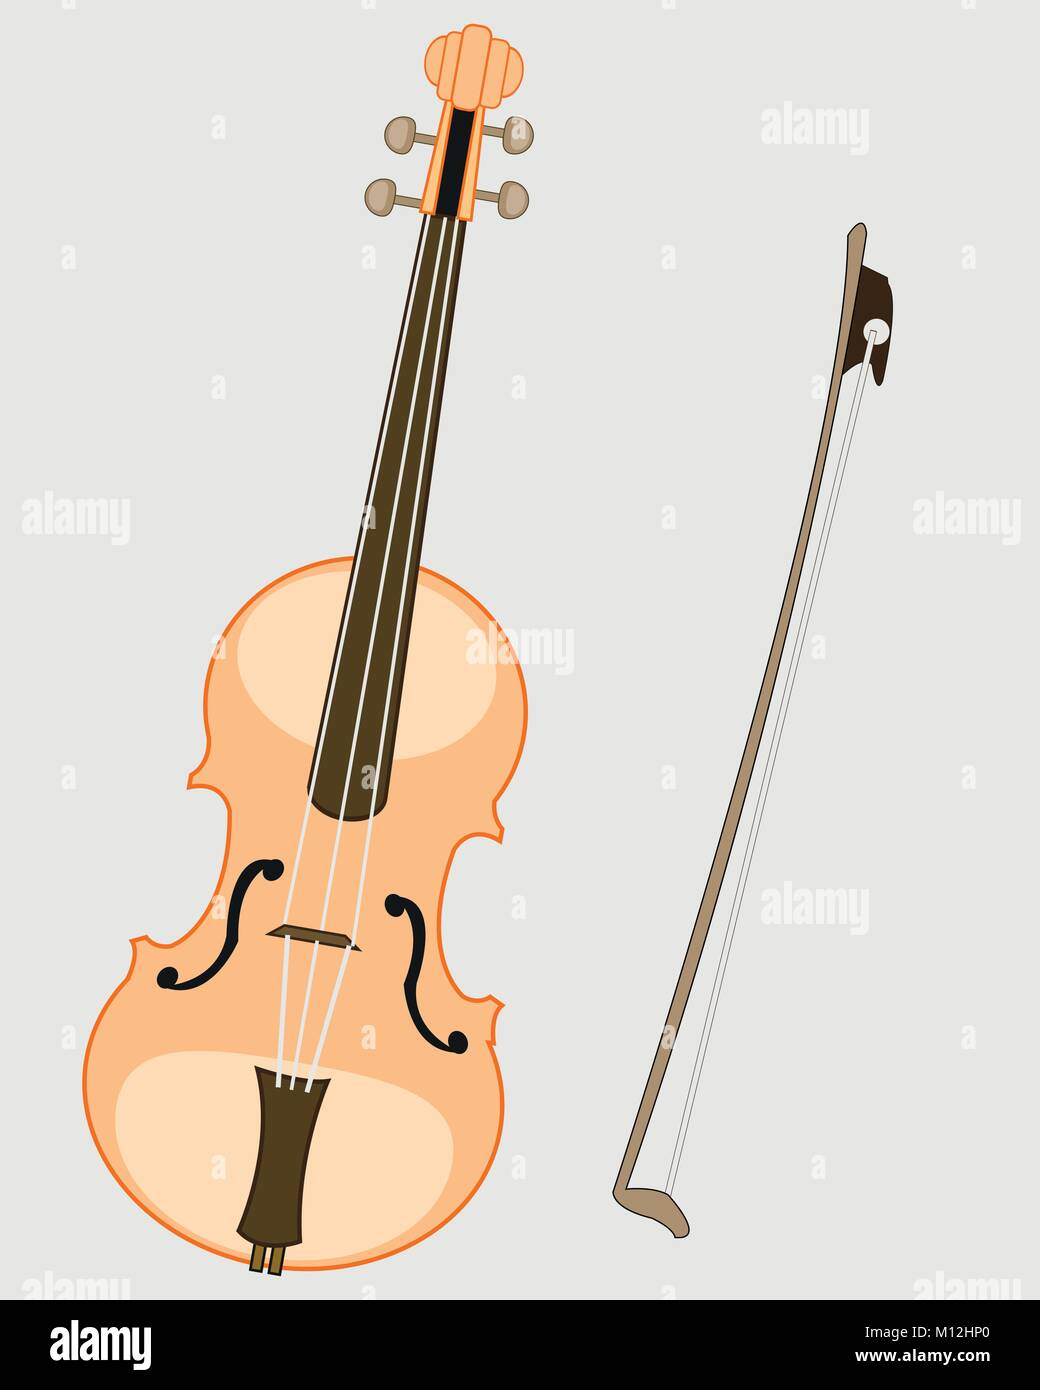 Music instrument violin and joining - Stock Vector